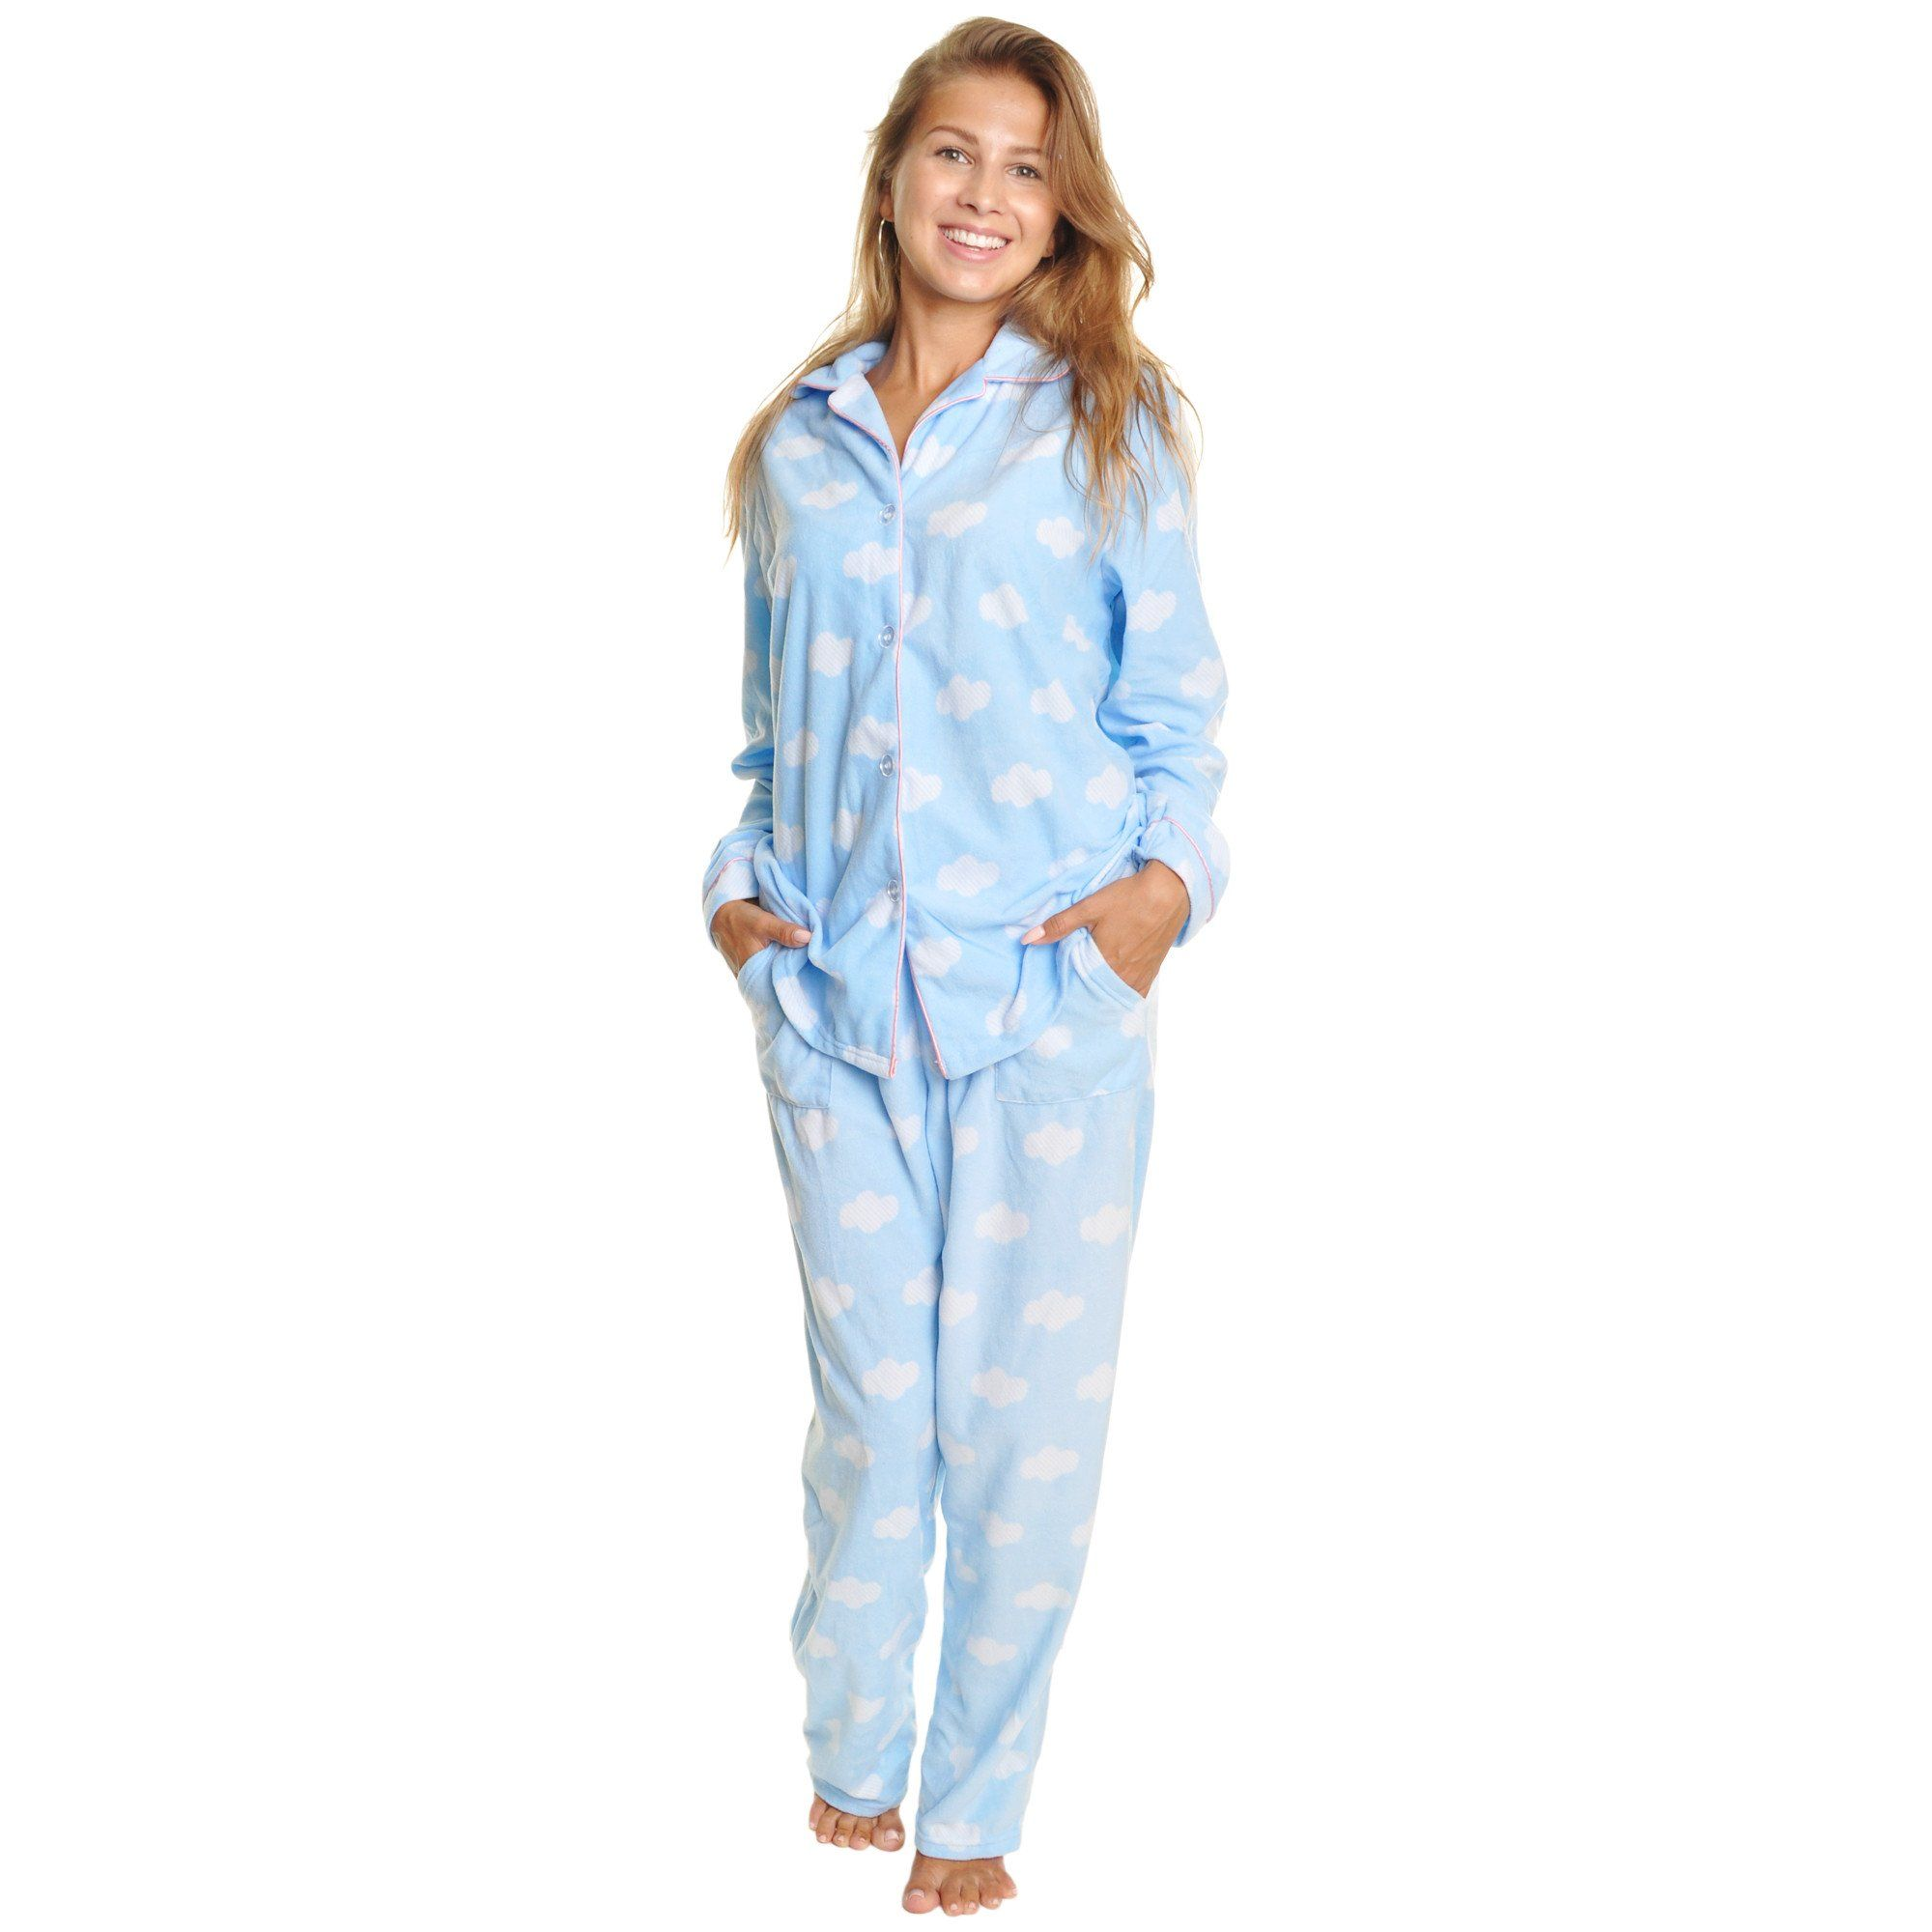 34f708badf29 Cozy Fleece Long Sleeve Button Up Pajama Pants Set